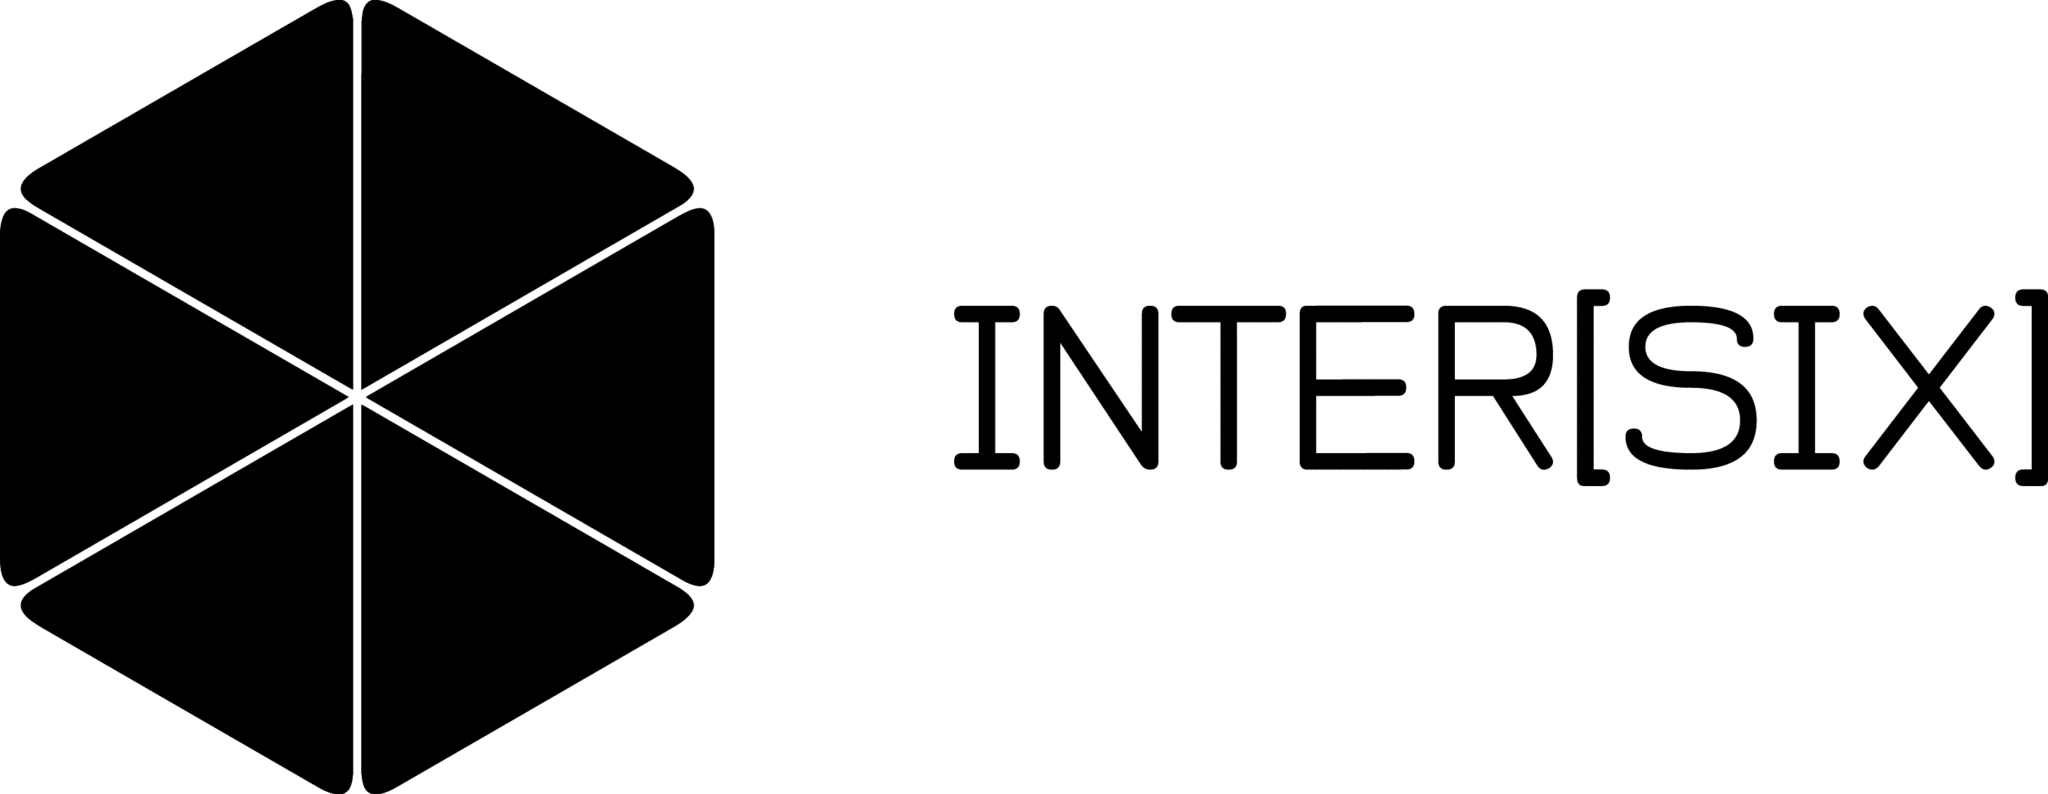 Intersix logo